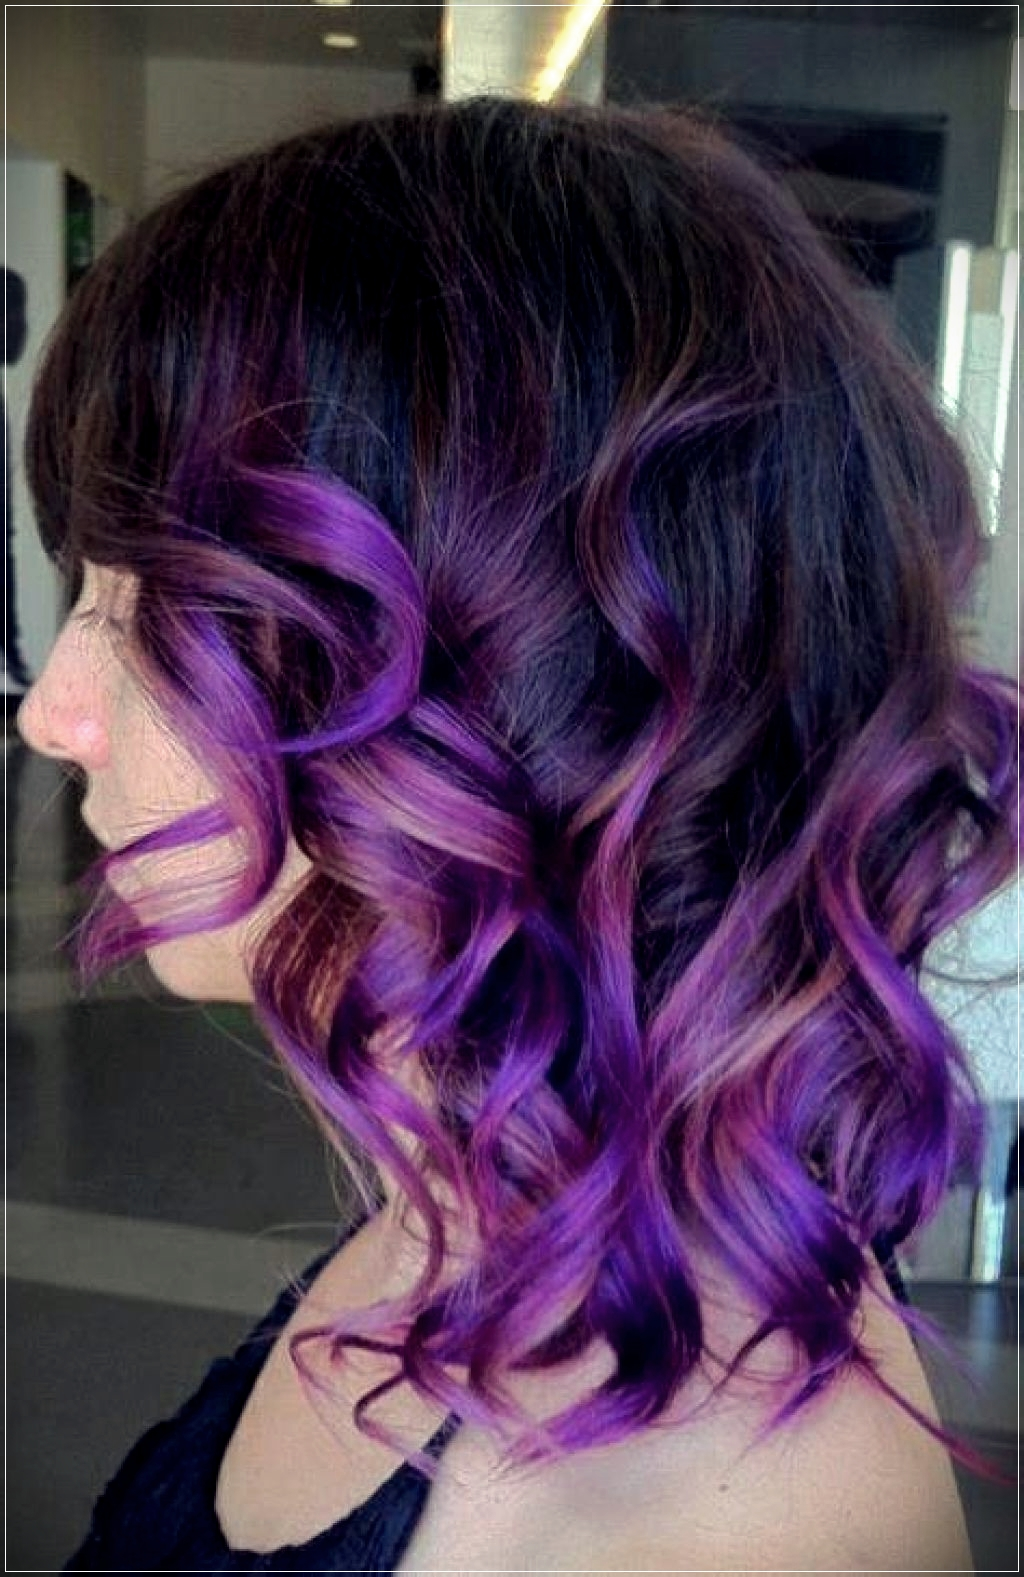 Different shades of purple